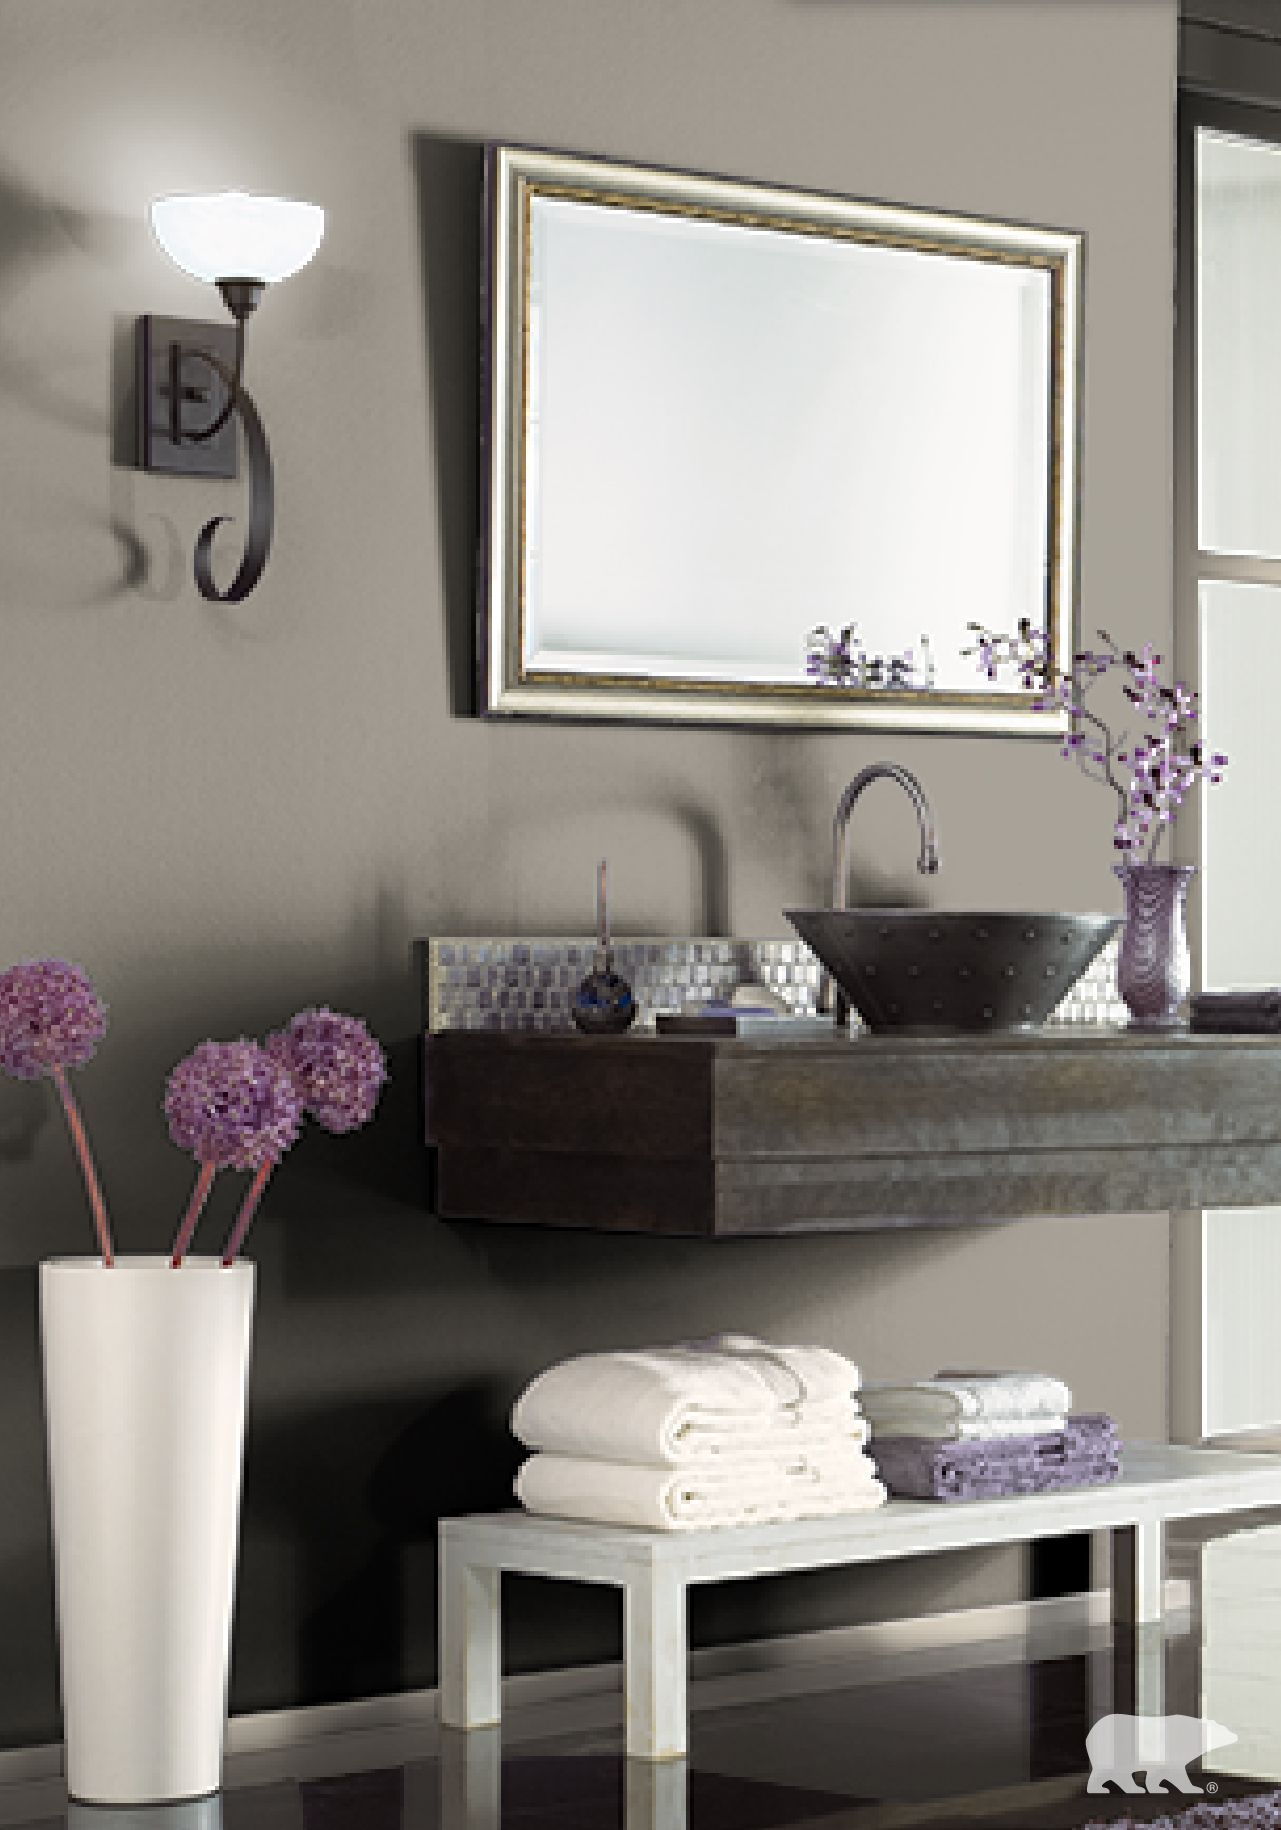 Pin By Tiffany Albertsen Horsch On Bathroom Ideas Bathroom Paint Colors Behr Paint Colors